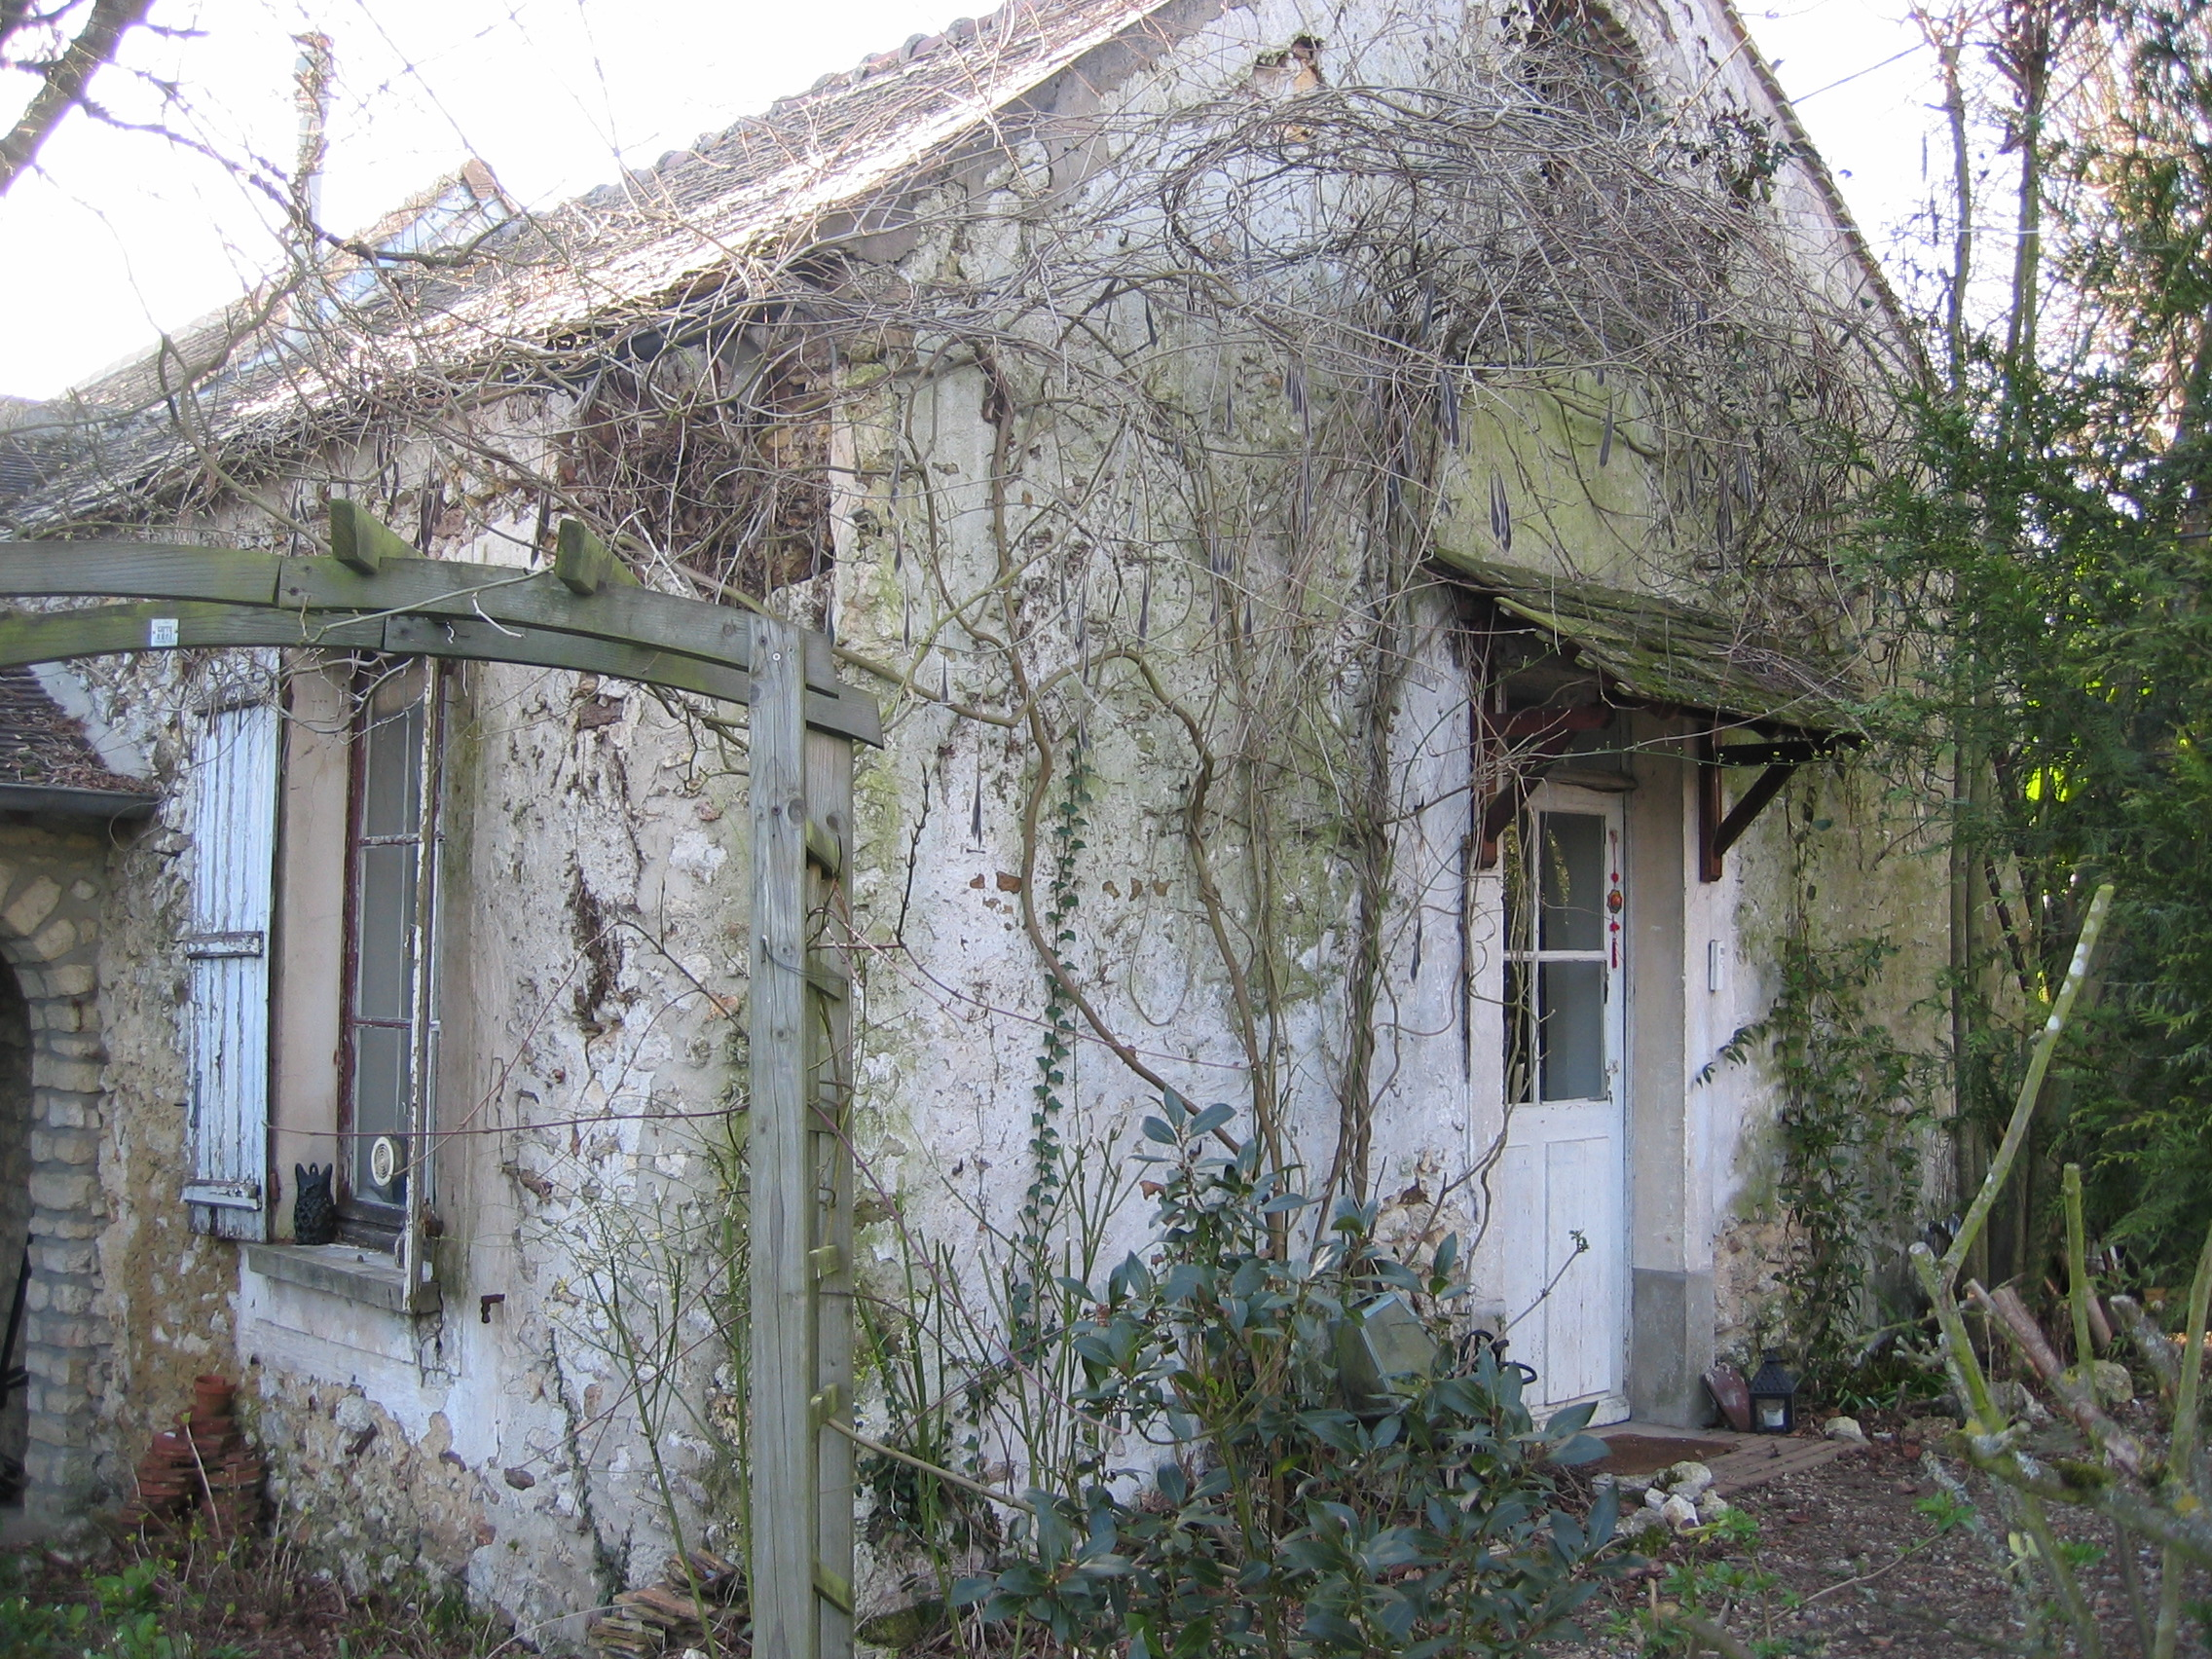 MY former studio in Septeuil, France 2007-2008.